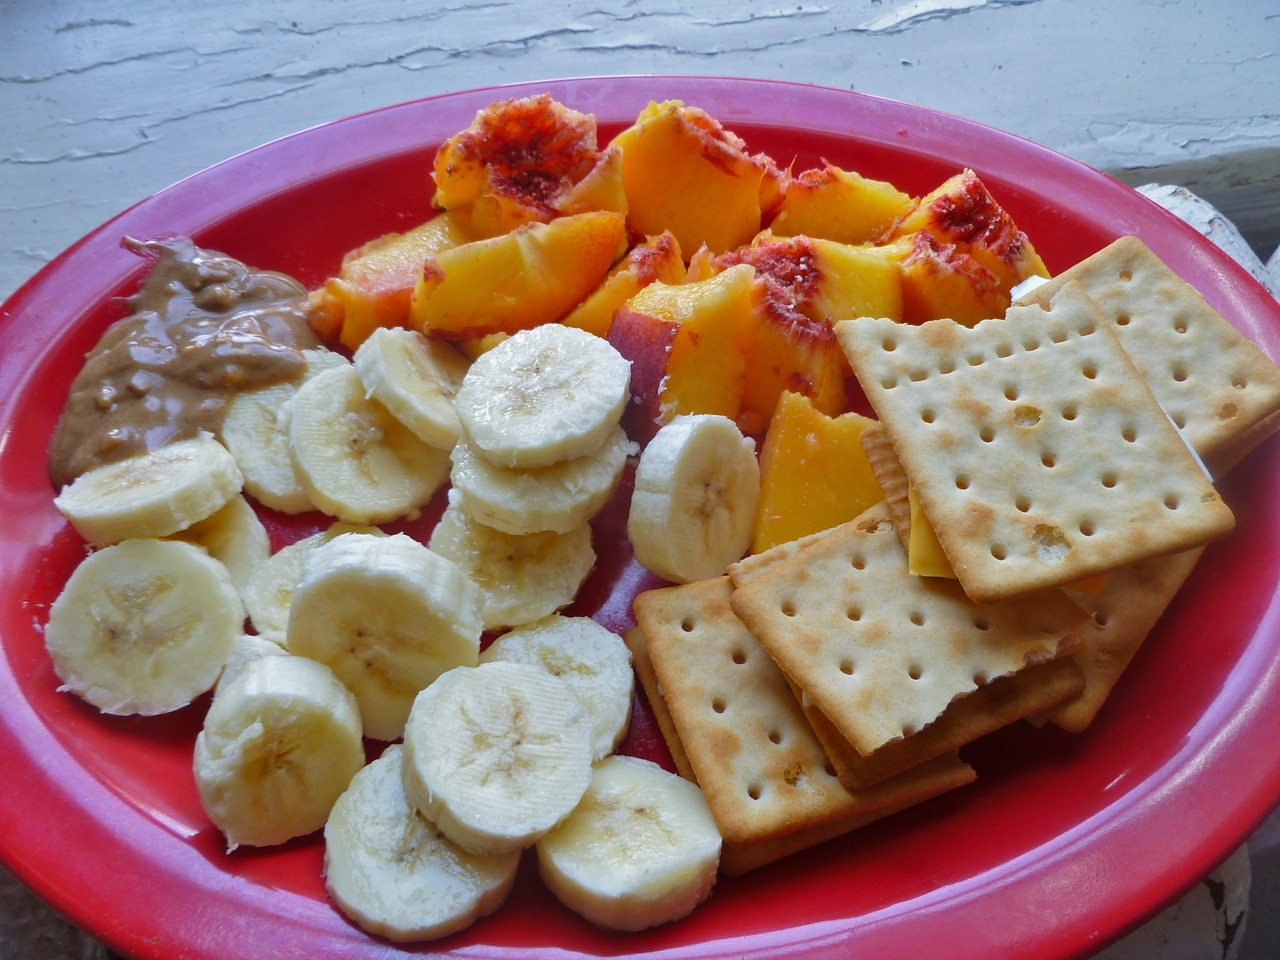 morning meals: fresh fruit with almond butter and Schar Dedicated Gluten-Free Table Crackers